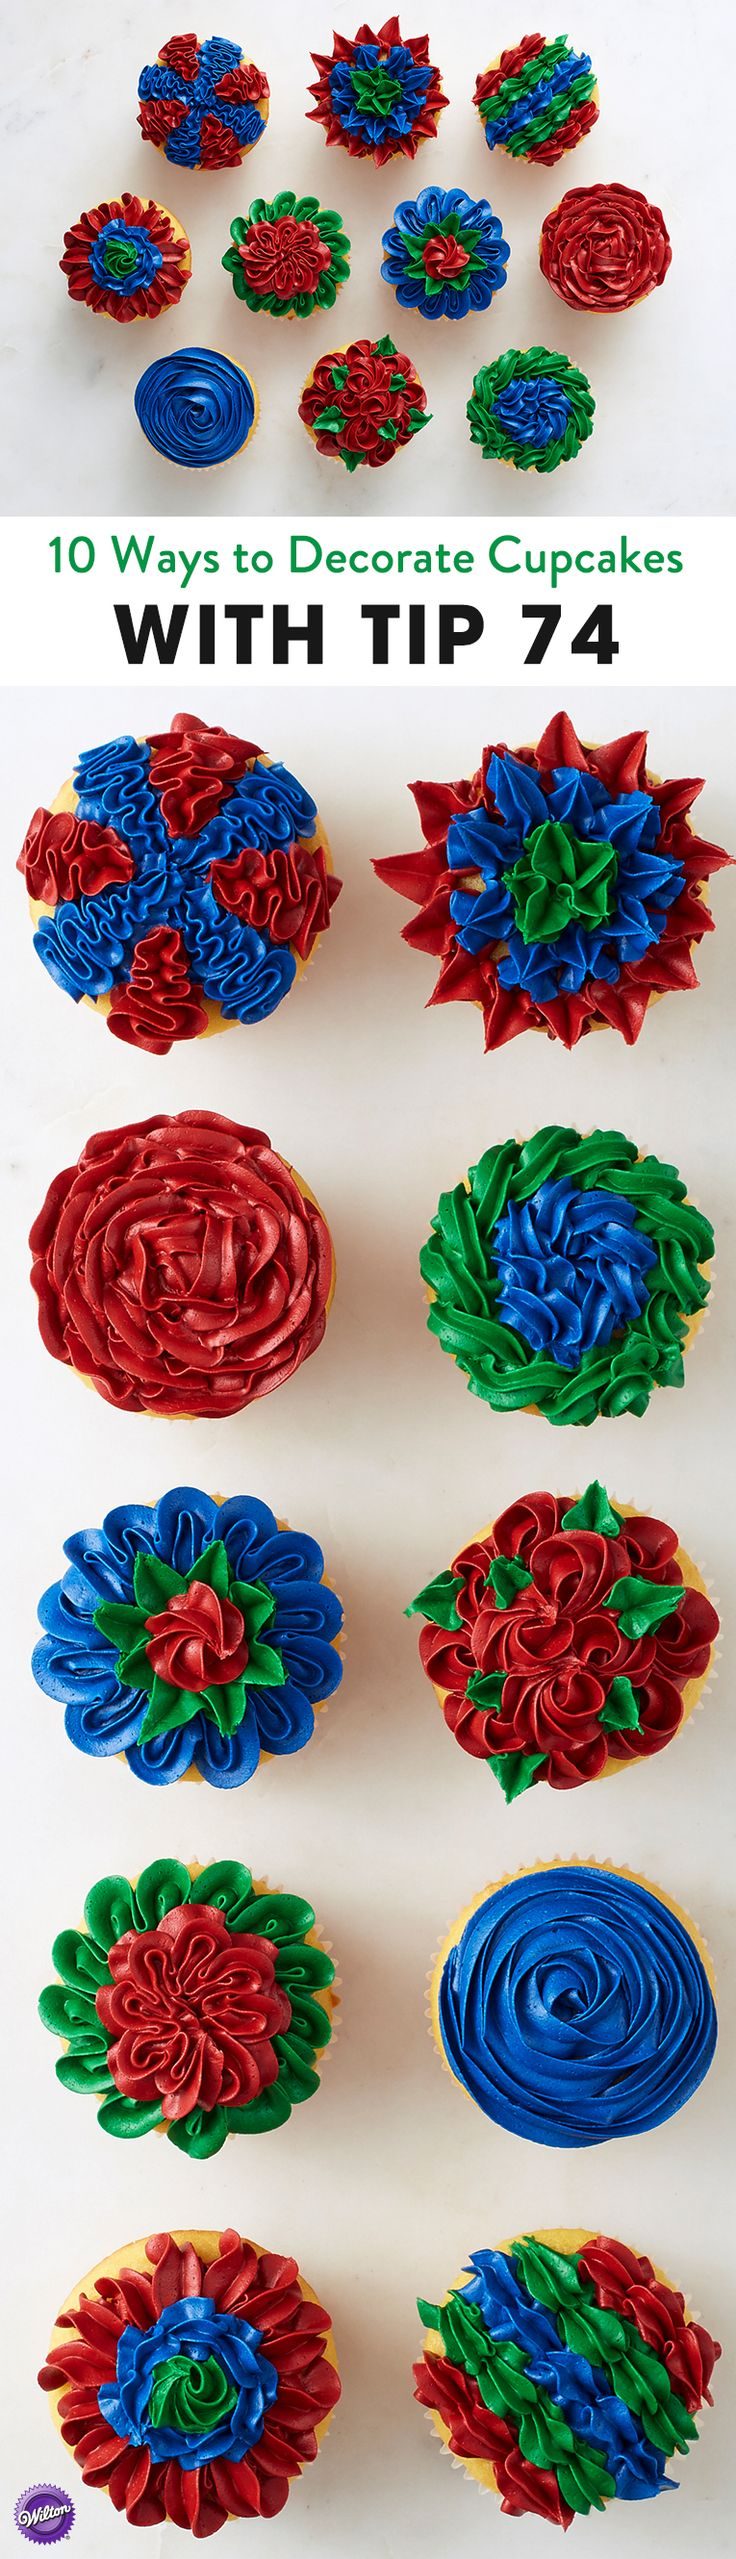 10 Ways to Decorate Cupcakes with Wilton Tip 74 - Just because decorating tip 74 is designed for leaves doesn't mean you can't use it for other designs! Great for piping shells, roses, rosettes, ruffles and more, this decorating tip can add amazing texture and style to your cake or cupcakes.